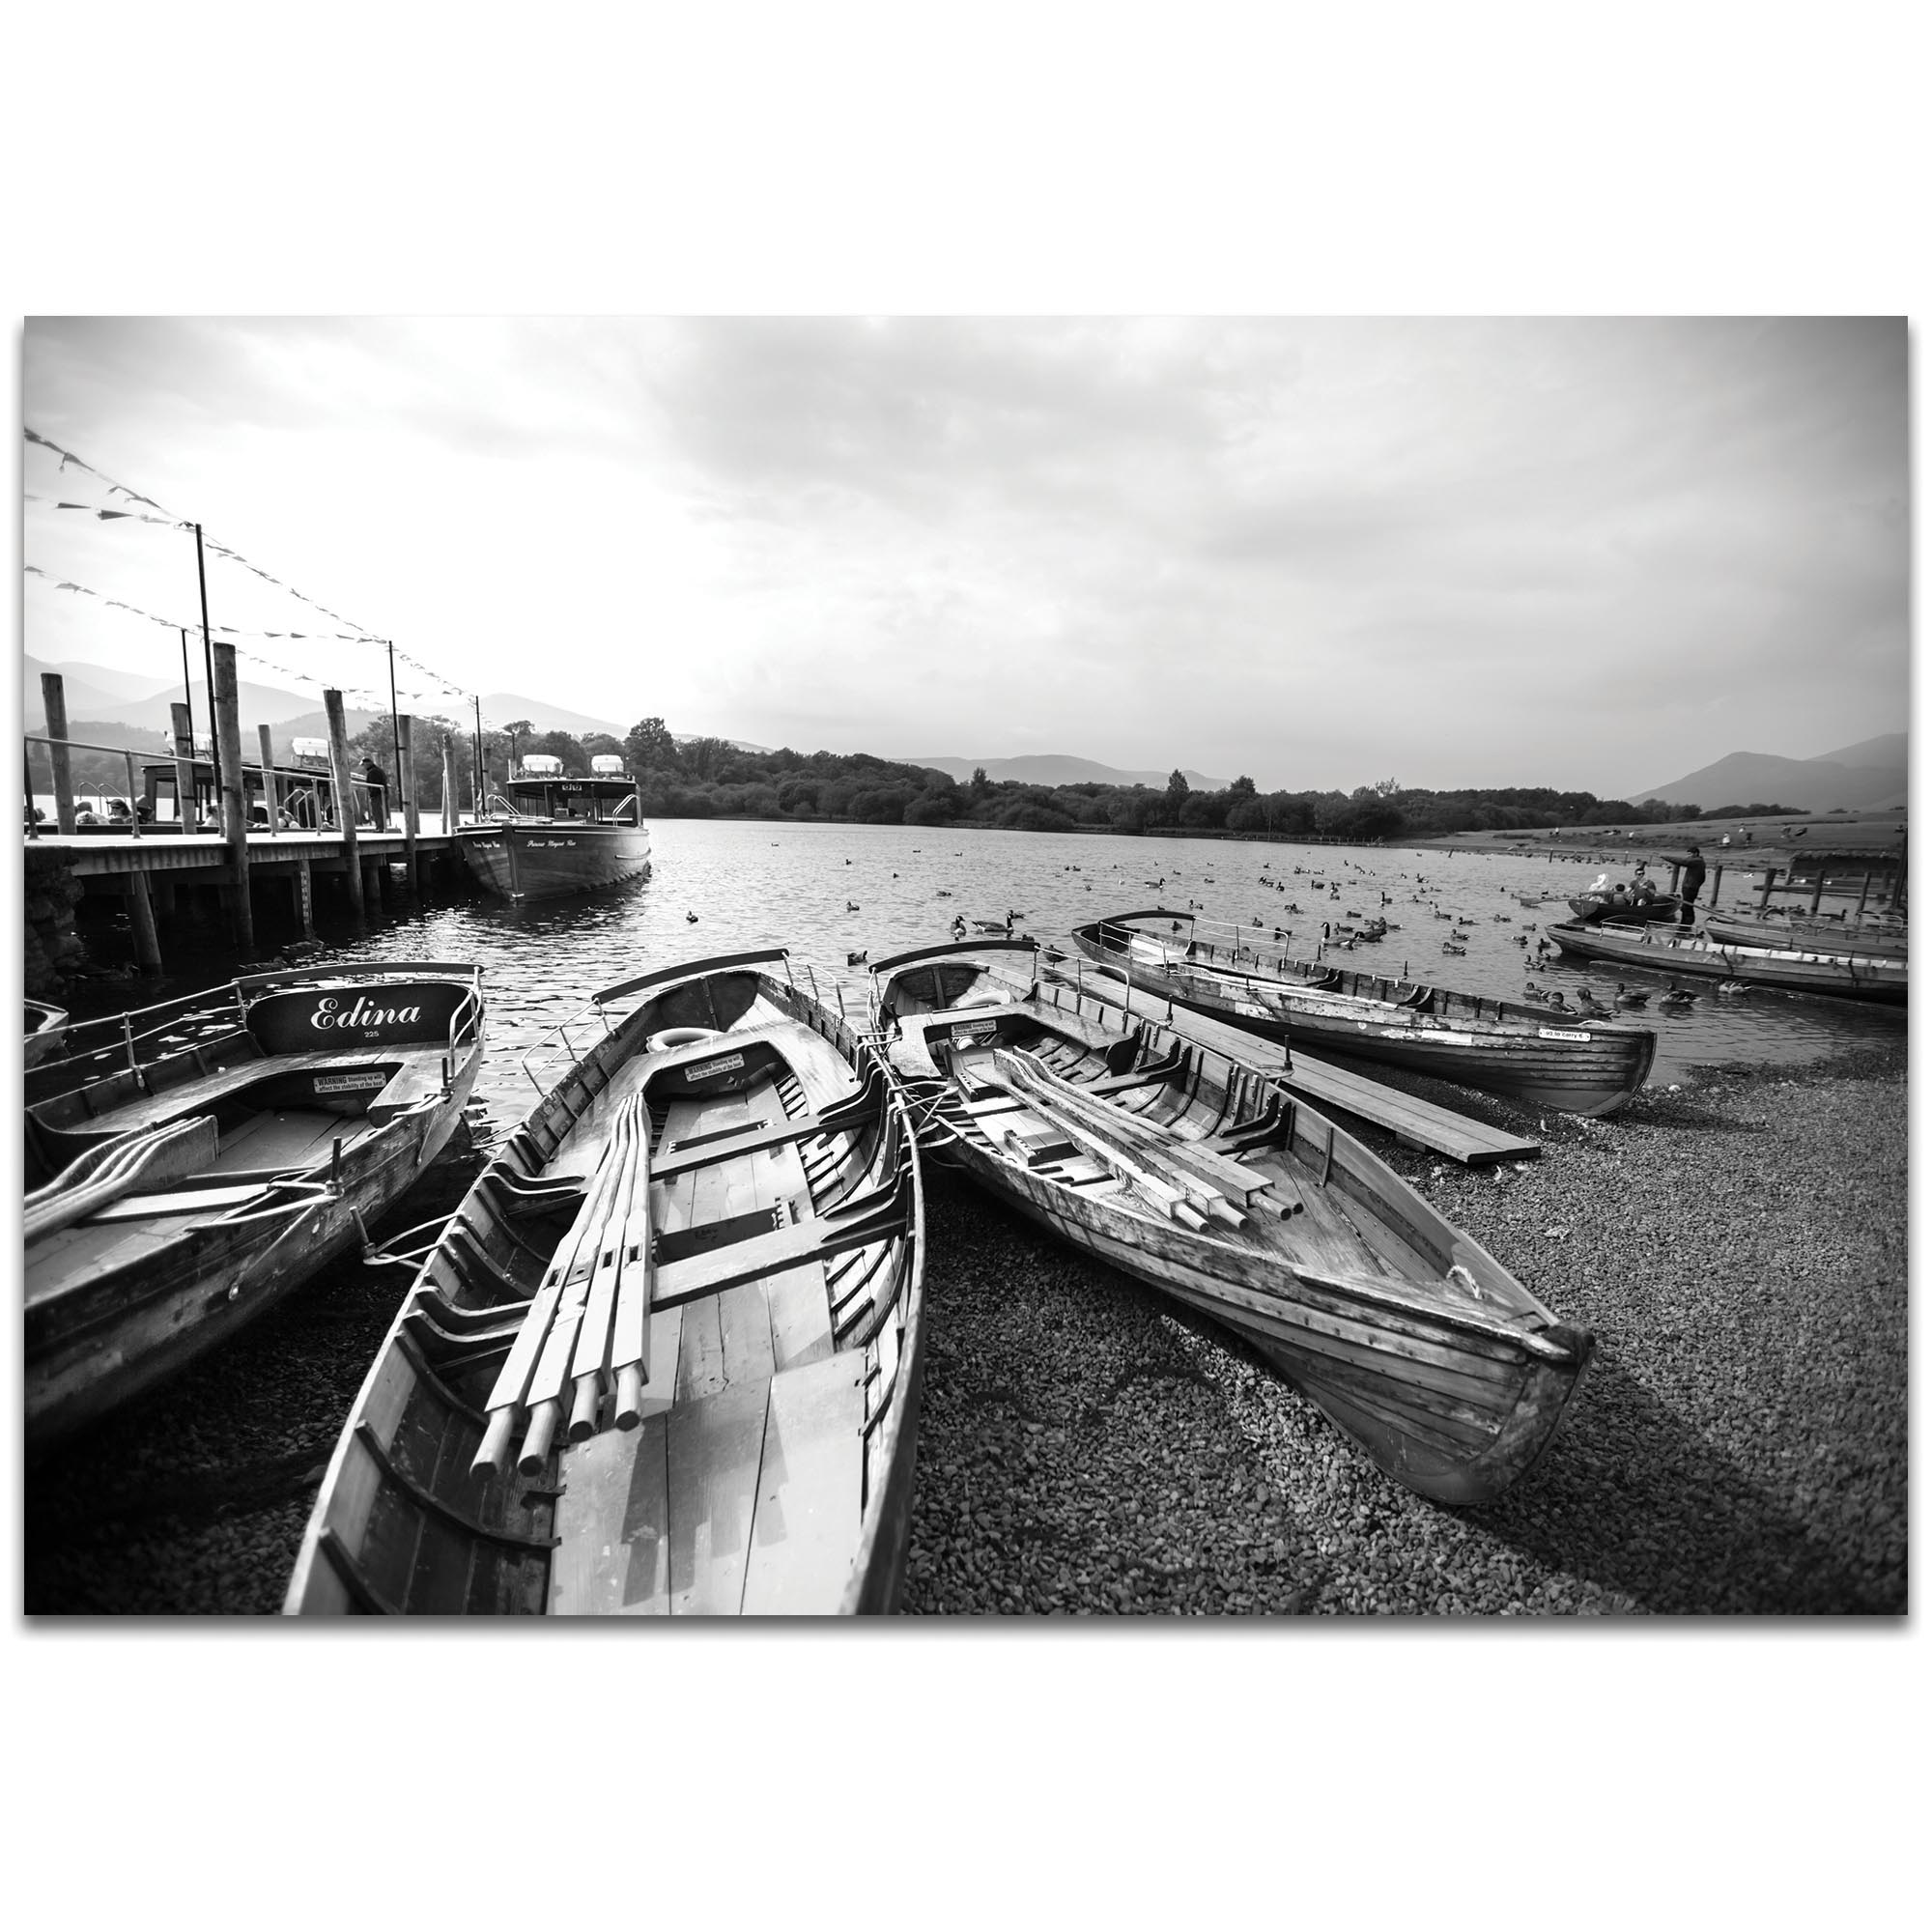 Black & White Photography 'Row of Rowers' - Coastal Art on Metal or Plexiglass